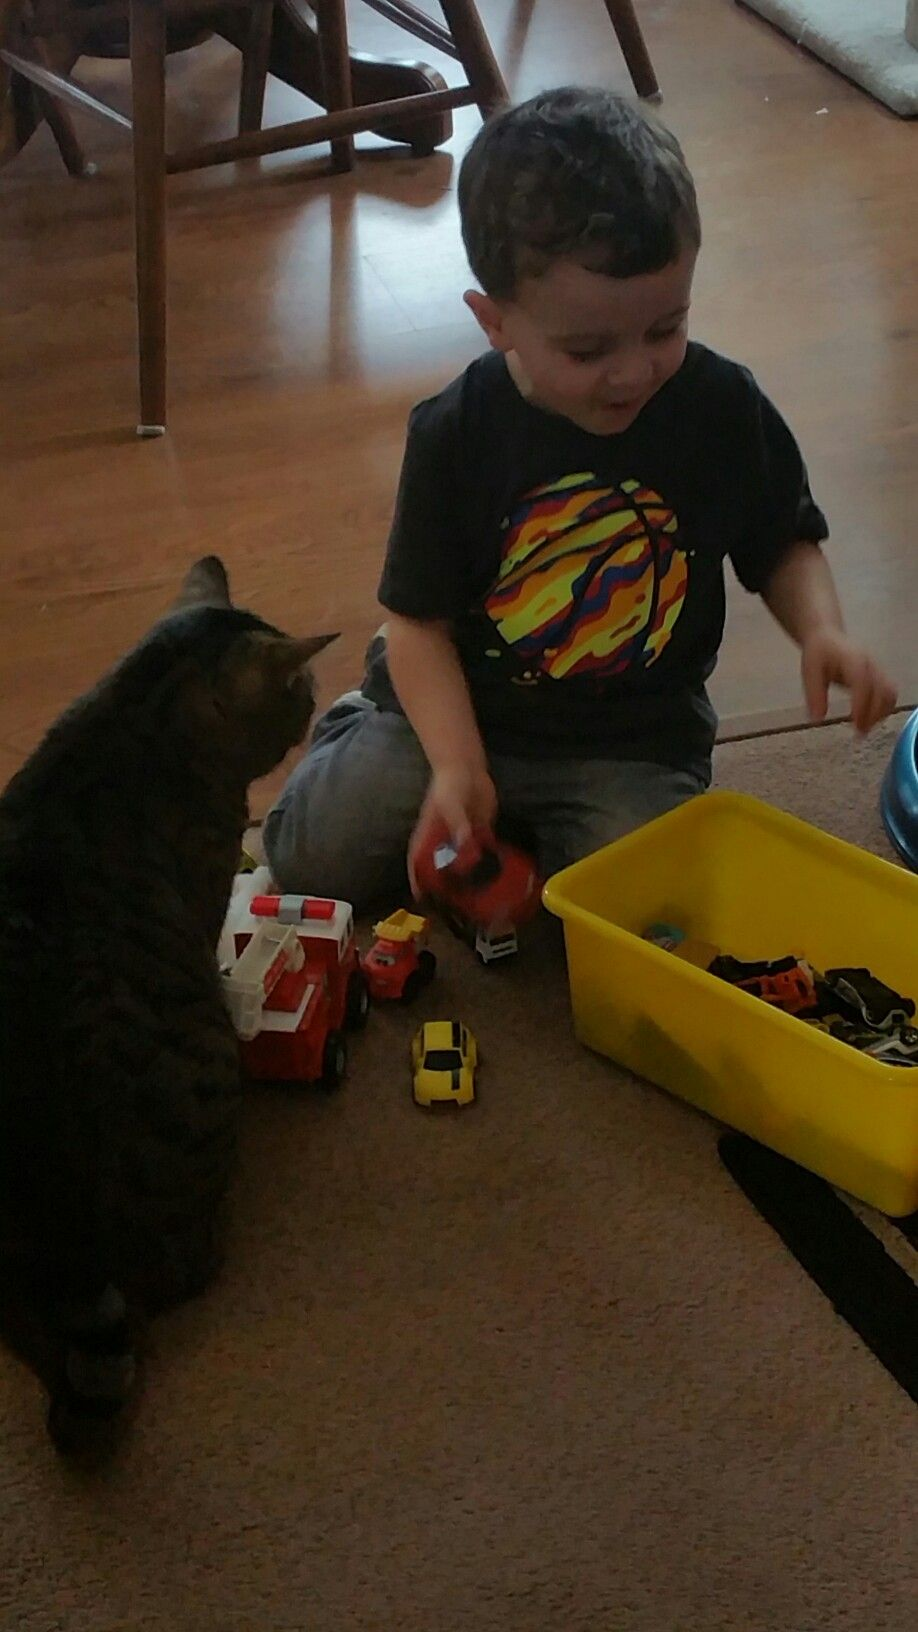 Toys and me images  This miniature human is sharing his toys with me  Feline